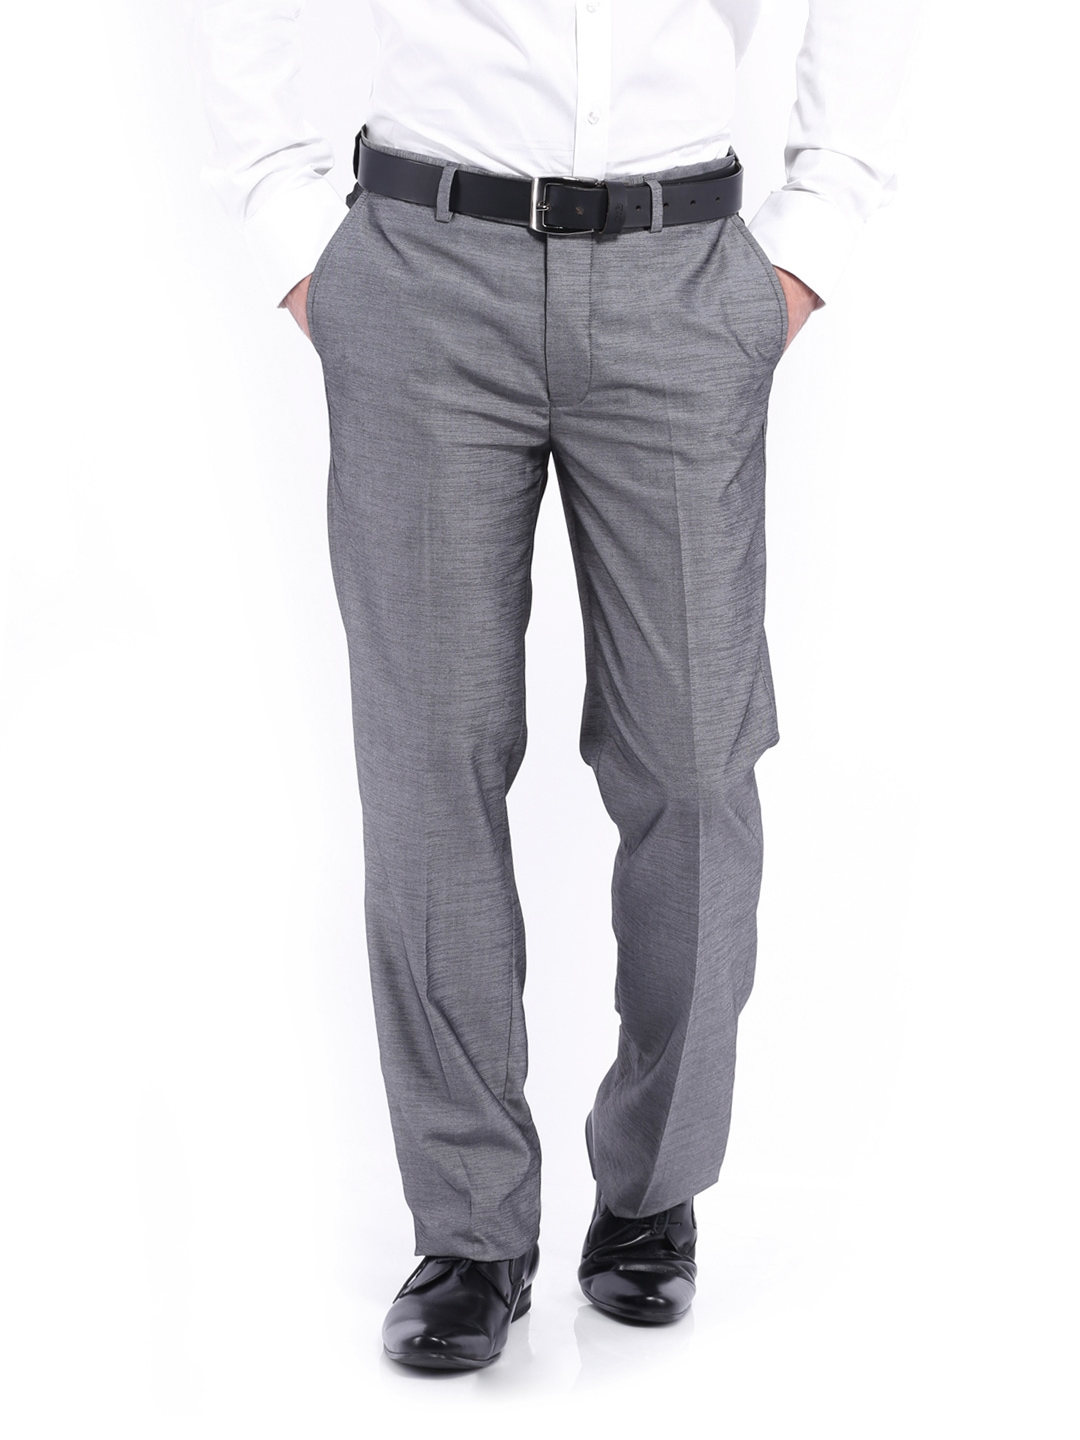 Find great deals on eBay for boys grey formal trousers. Shop with confidence.